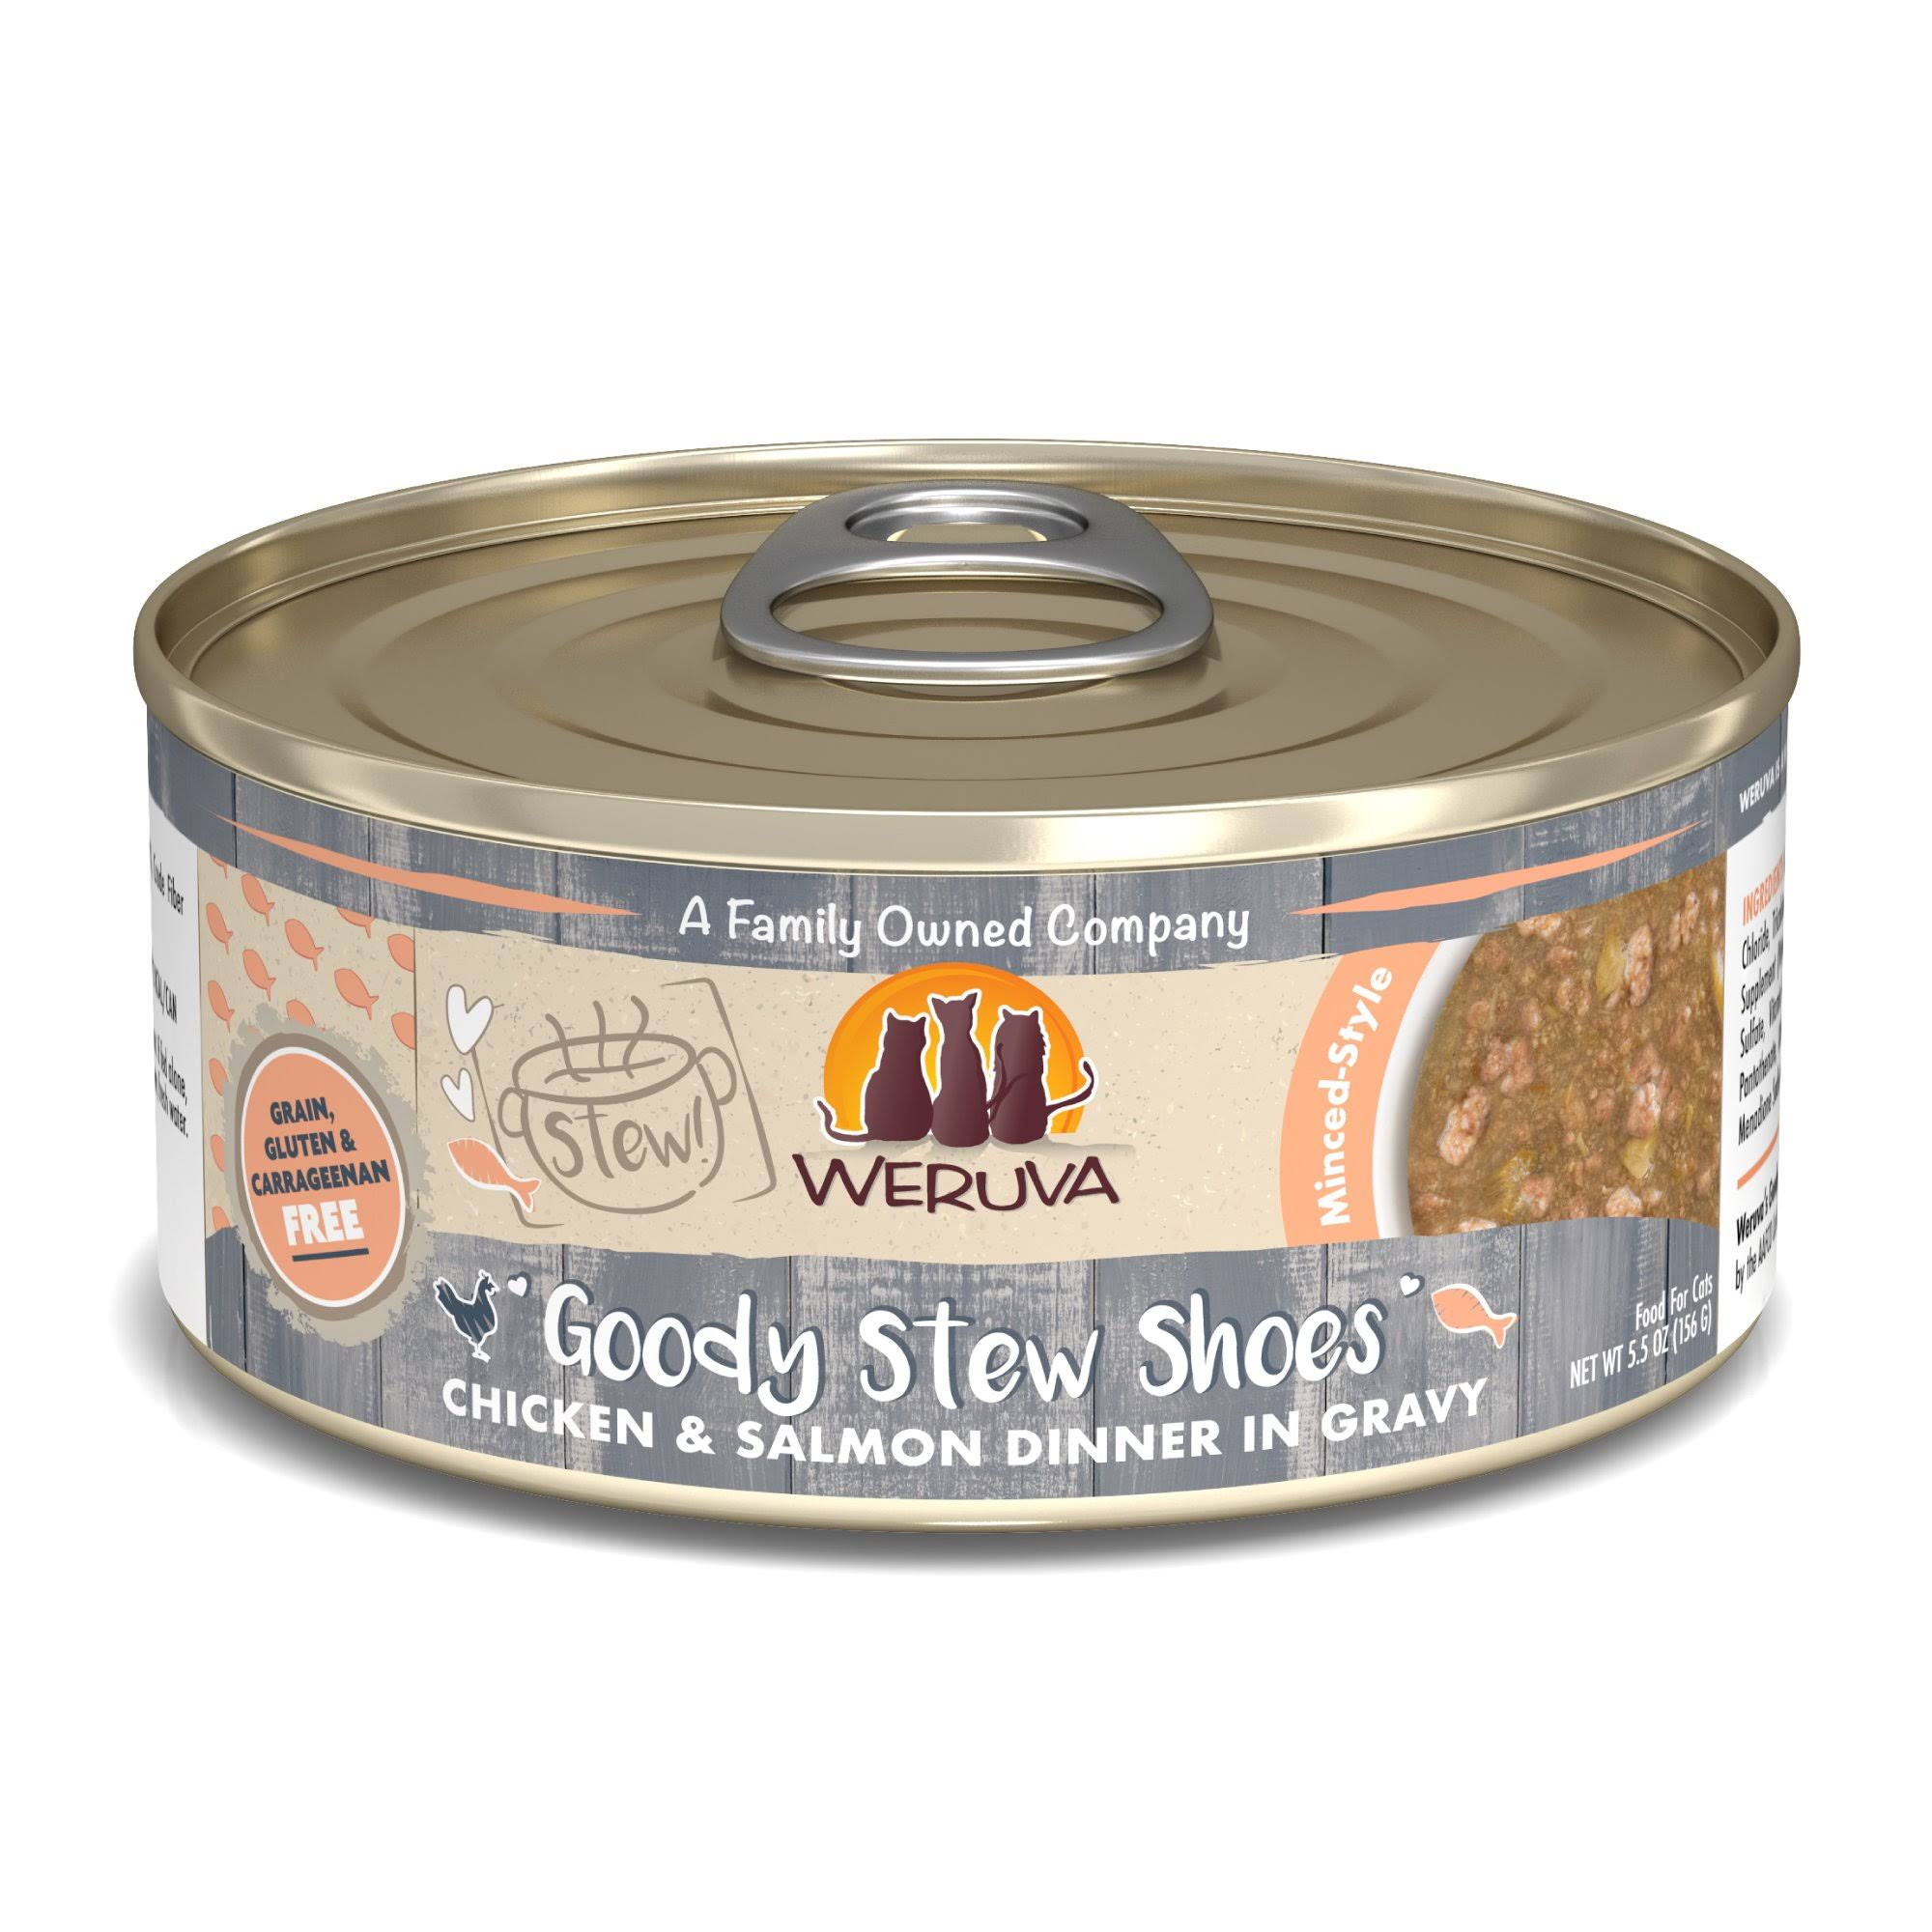 Weruva Stew! Goody Stew Shoes Chicken & Salmon Dinner in Gravy Food for Cats - 5.5 oz